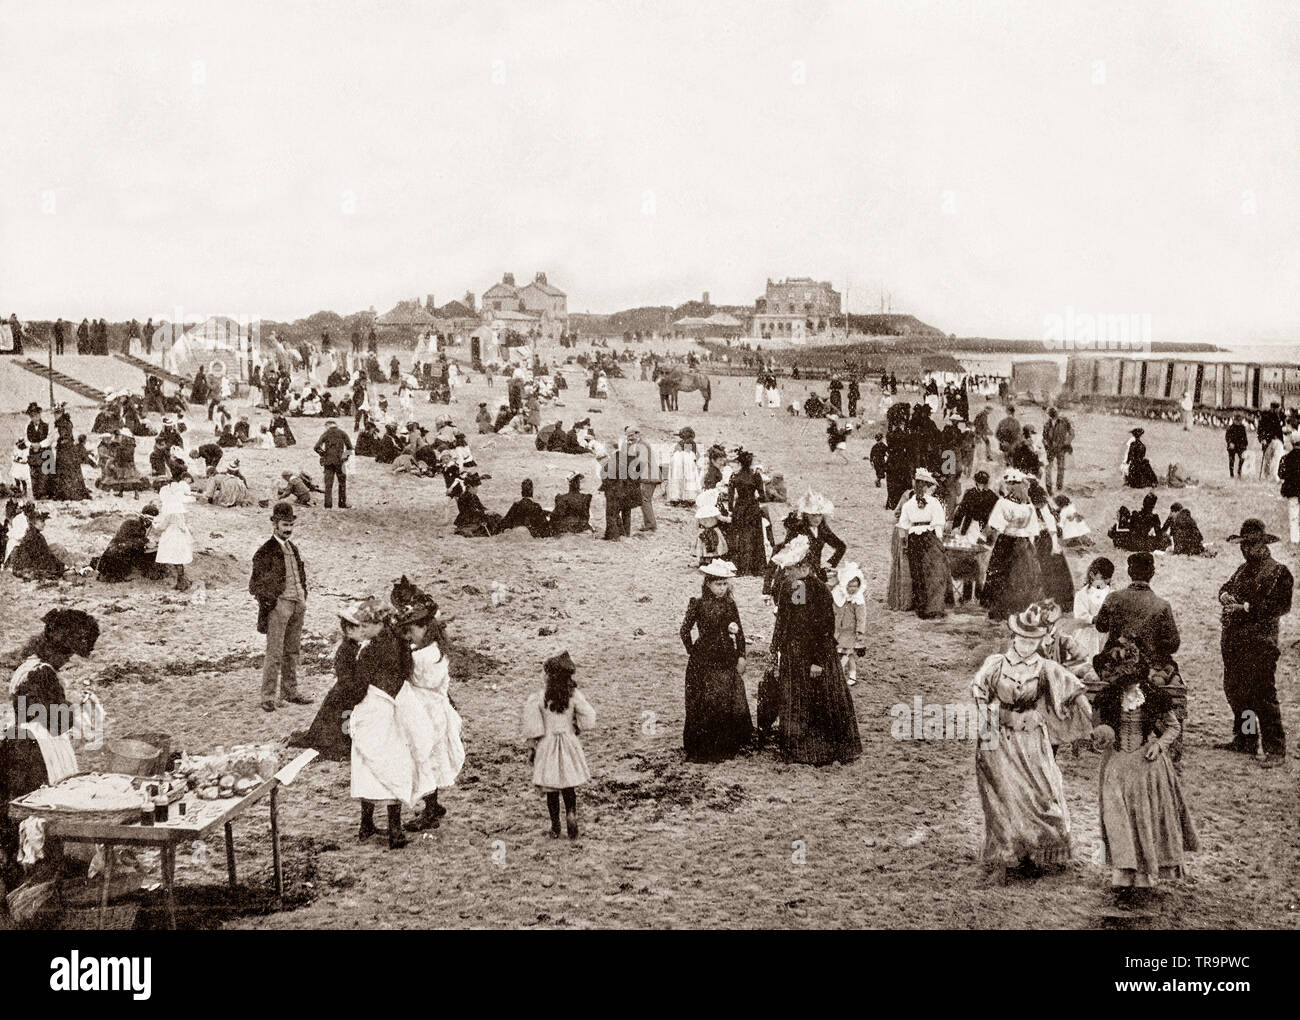 A 19th Century view of  holiday - makers on the beach at Walton-on-the-Naze, a small town in Essex, England, on the North Sea coast.  Originally, it was a farming village situated miles inland, but over the centuries a large extent of land has been lost to the sea due to coastal erosion. - Stock Image